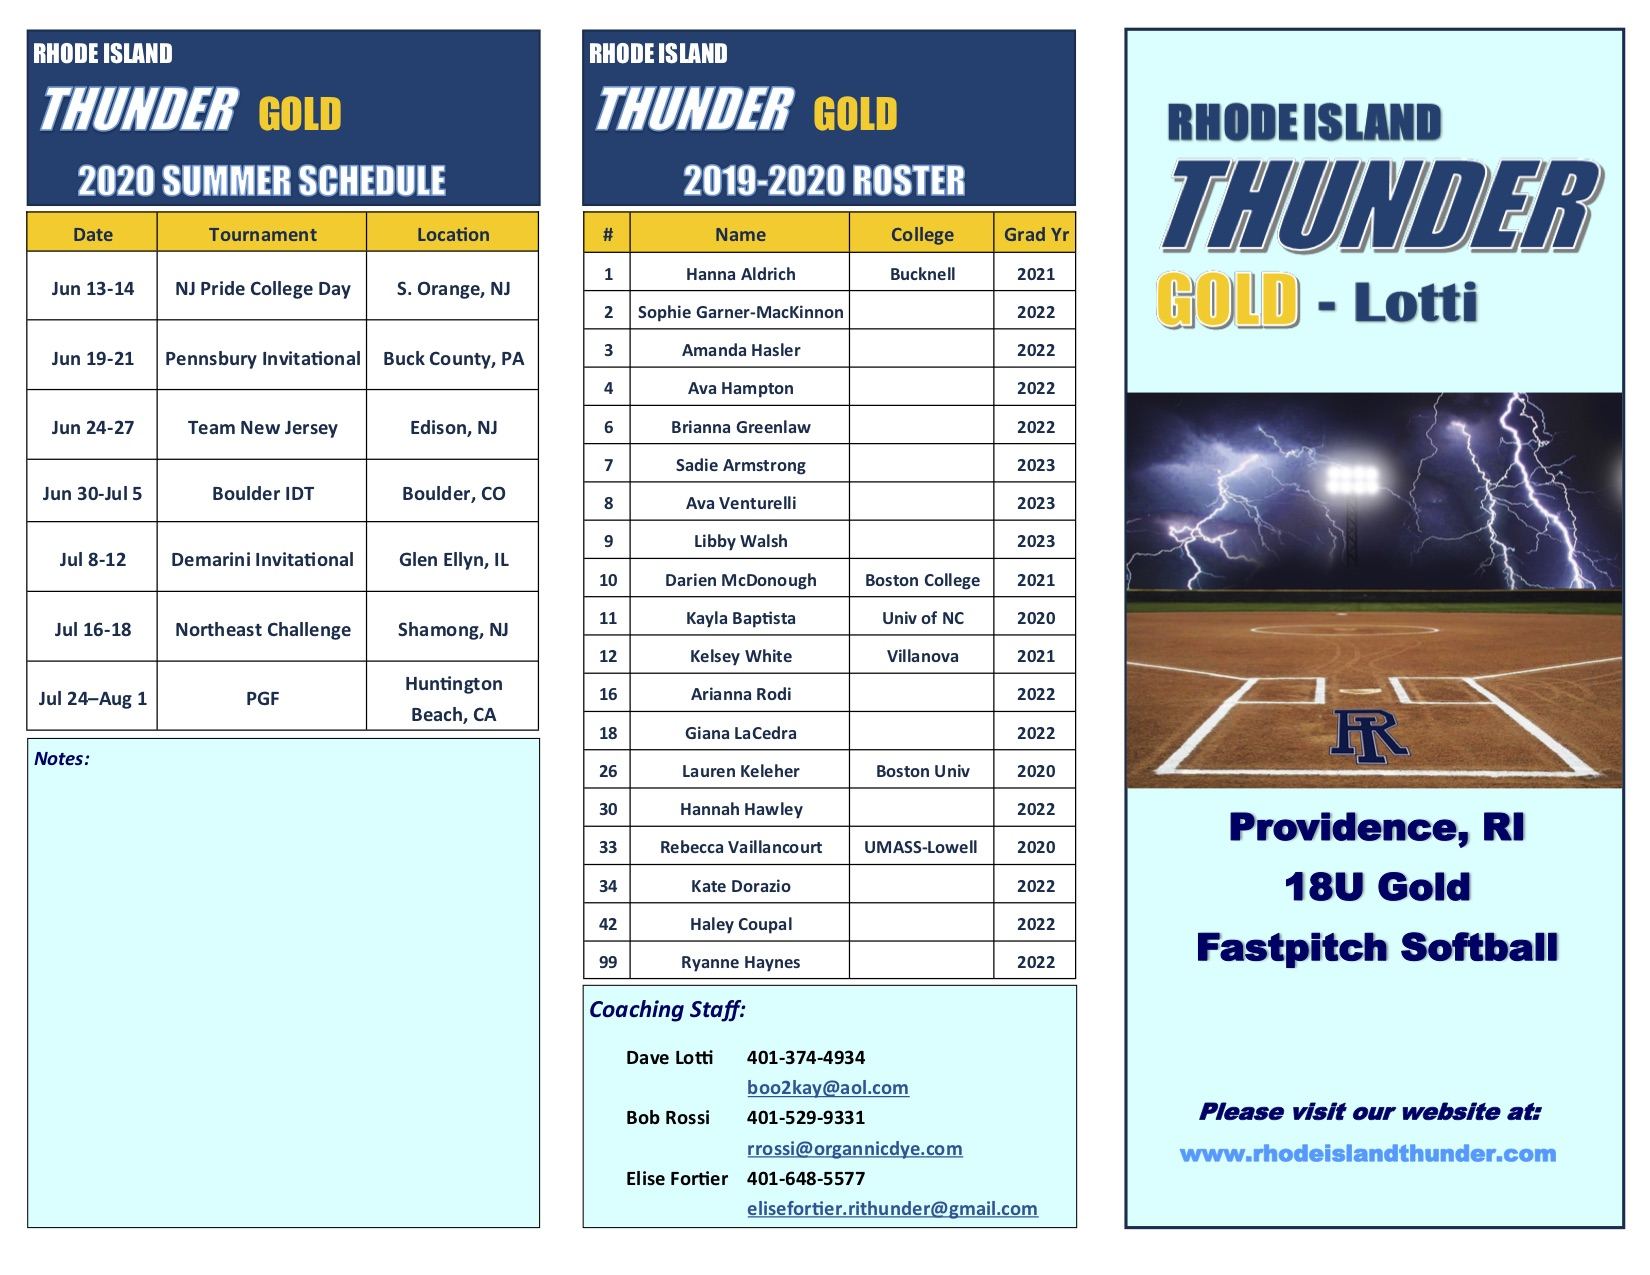 RI Thunder Gold 18U Lotti 2